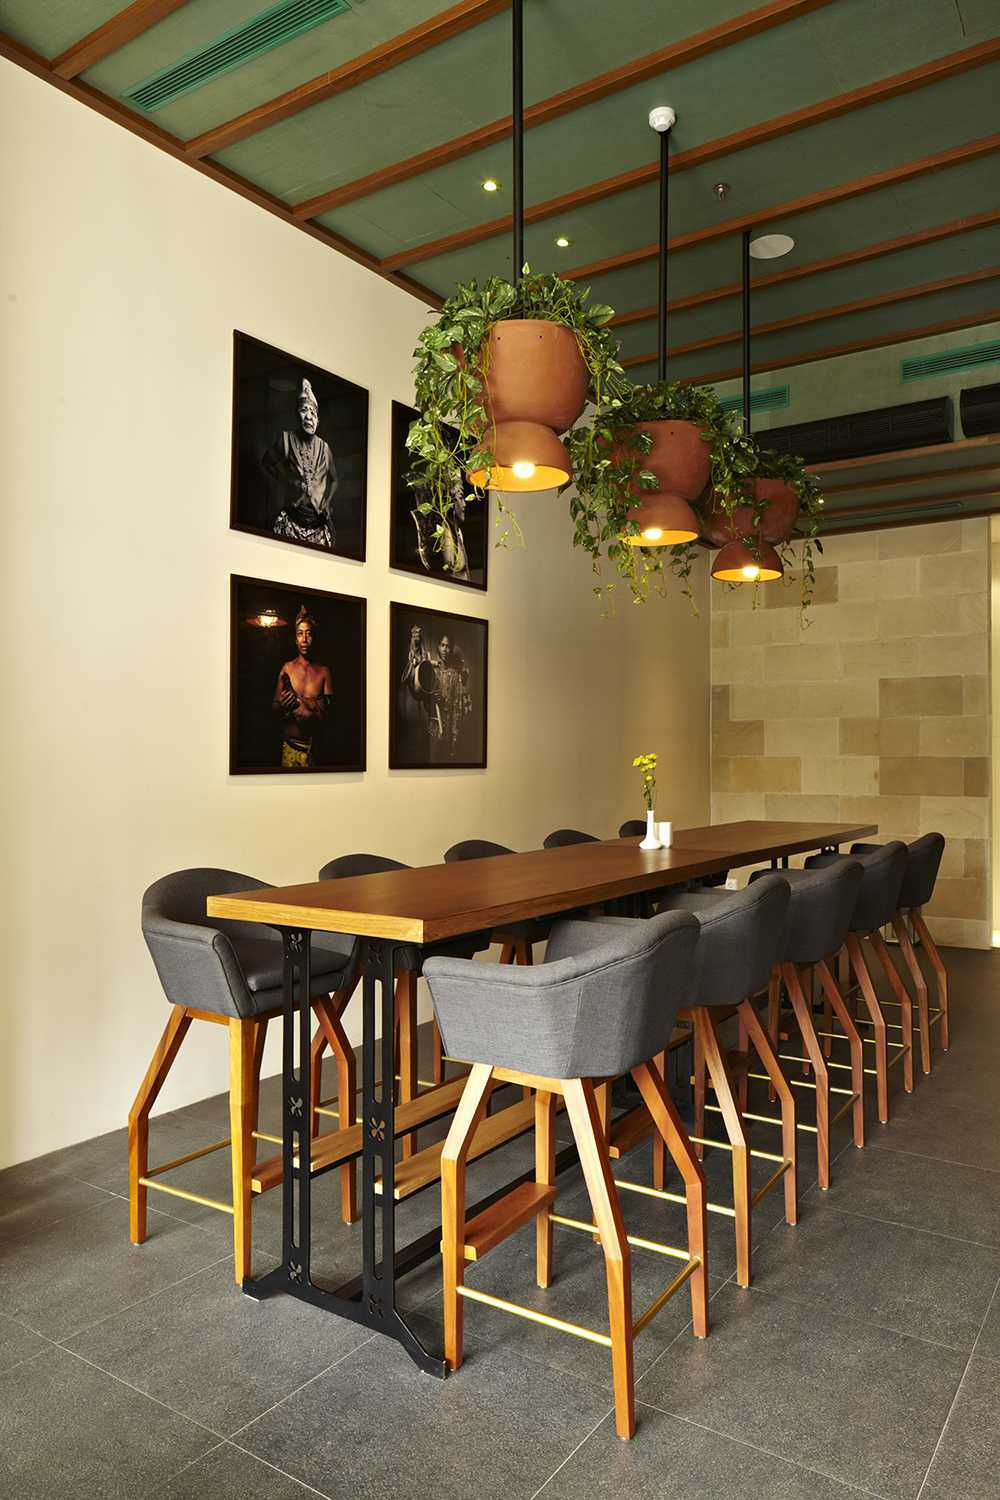 Alvin Tjitrowirjo, Alvint Studio Dapour & 100 Bar And Eatery Hotel Atlet Century Park Senayan Hotel Atlet Century Park Senayan Dining Area Kontemporer <P>Special Design Planter Pot - Pendant Hand Made Out Of Terracotta. Seen On The Wall Are Photographs Of Indonesian People By Martin Westlake.&nbsp;</p> 15613